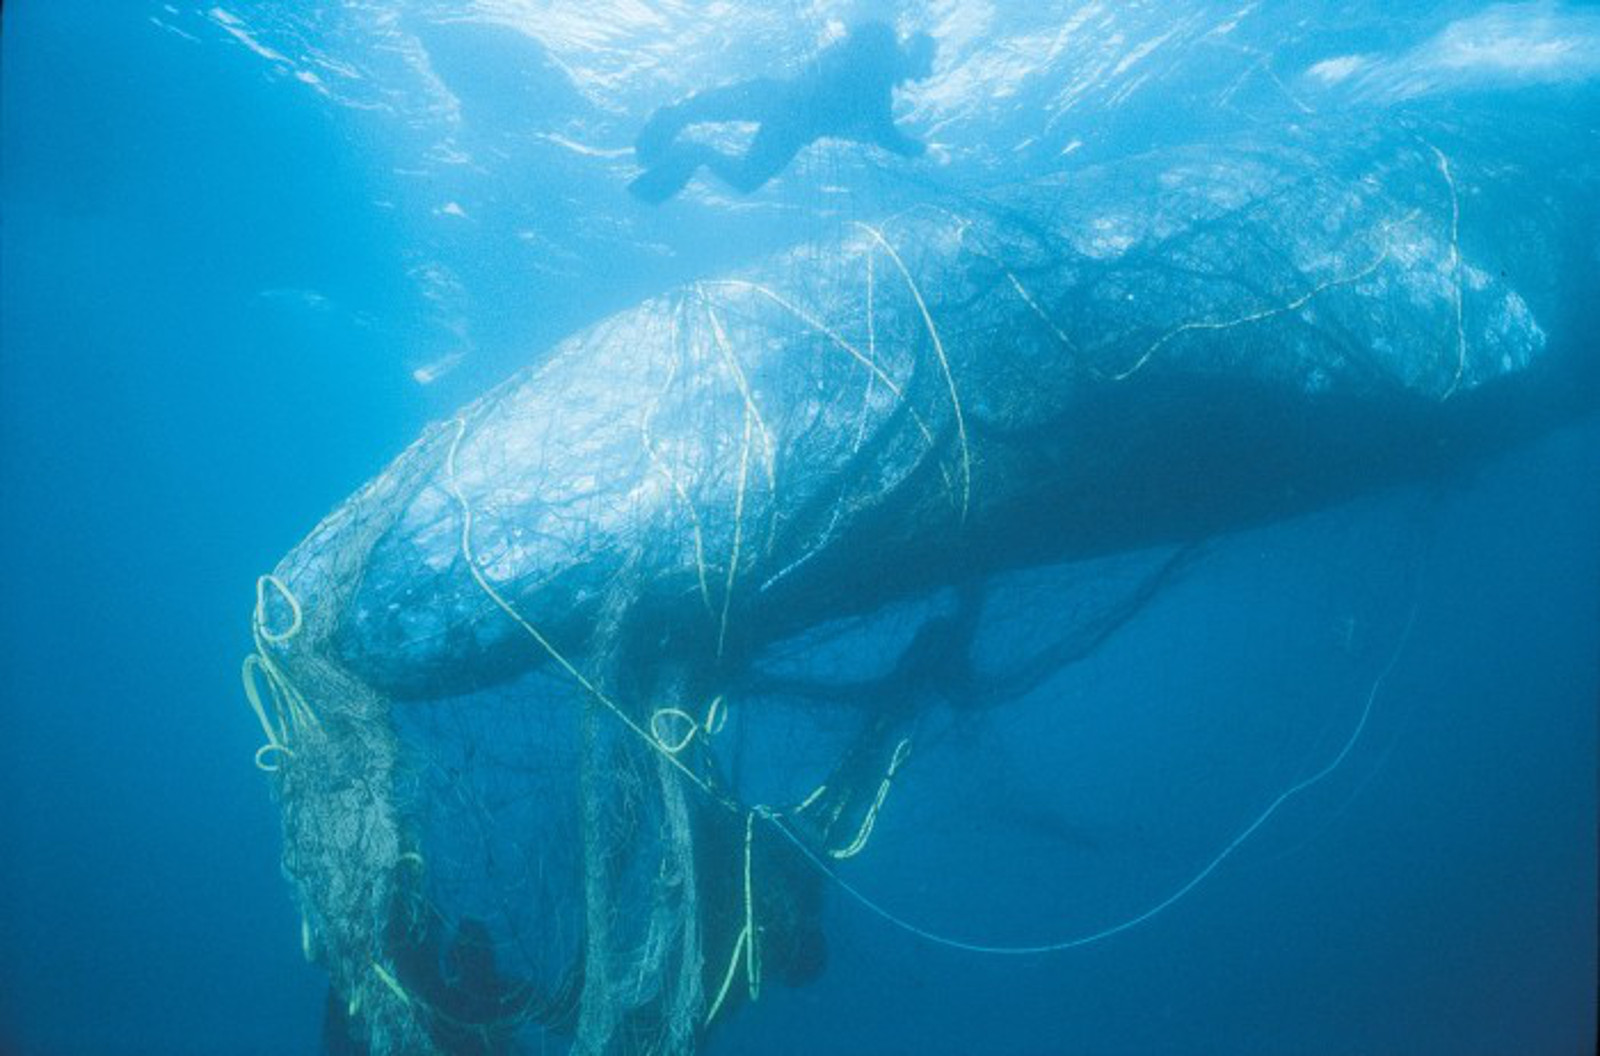 These Nets Designed to Capture Small Fish are Killing the Oceans – Here's How You Can Help Stop This Today!